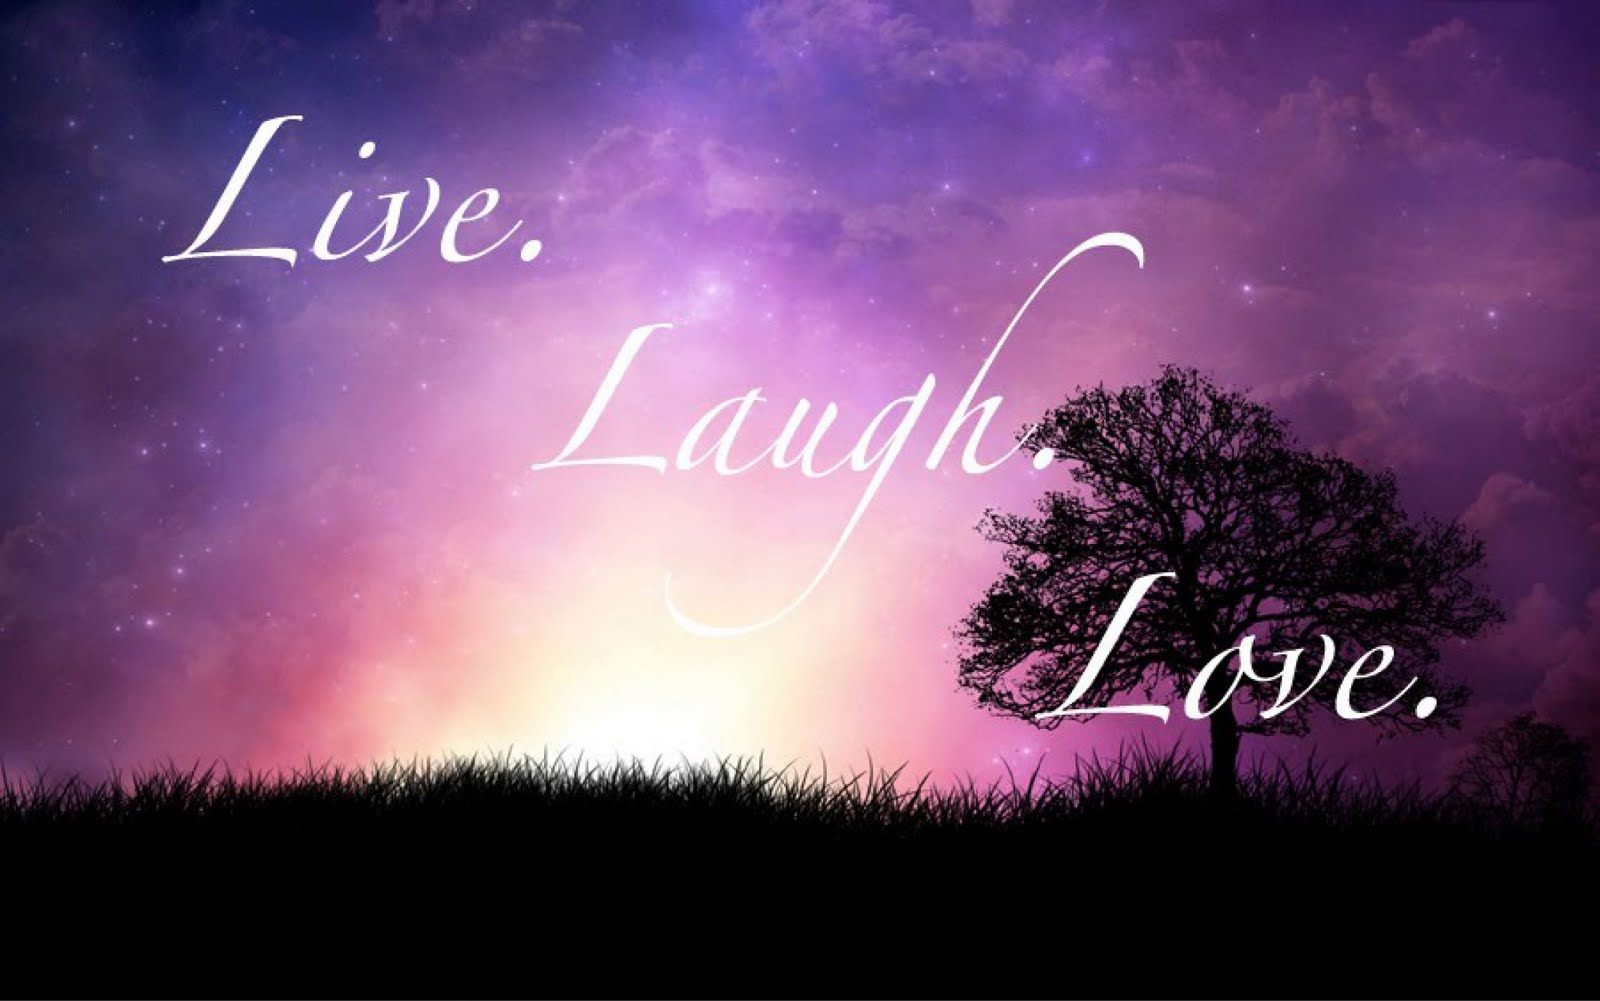 Live. Laugh. Love.